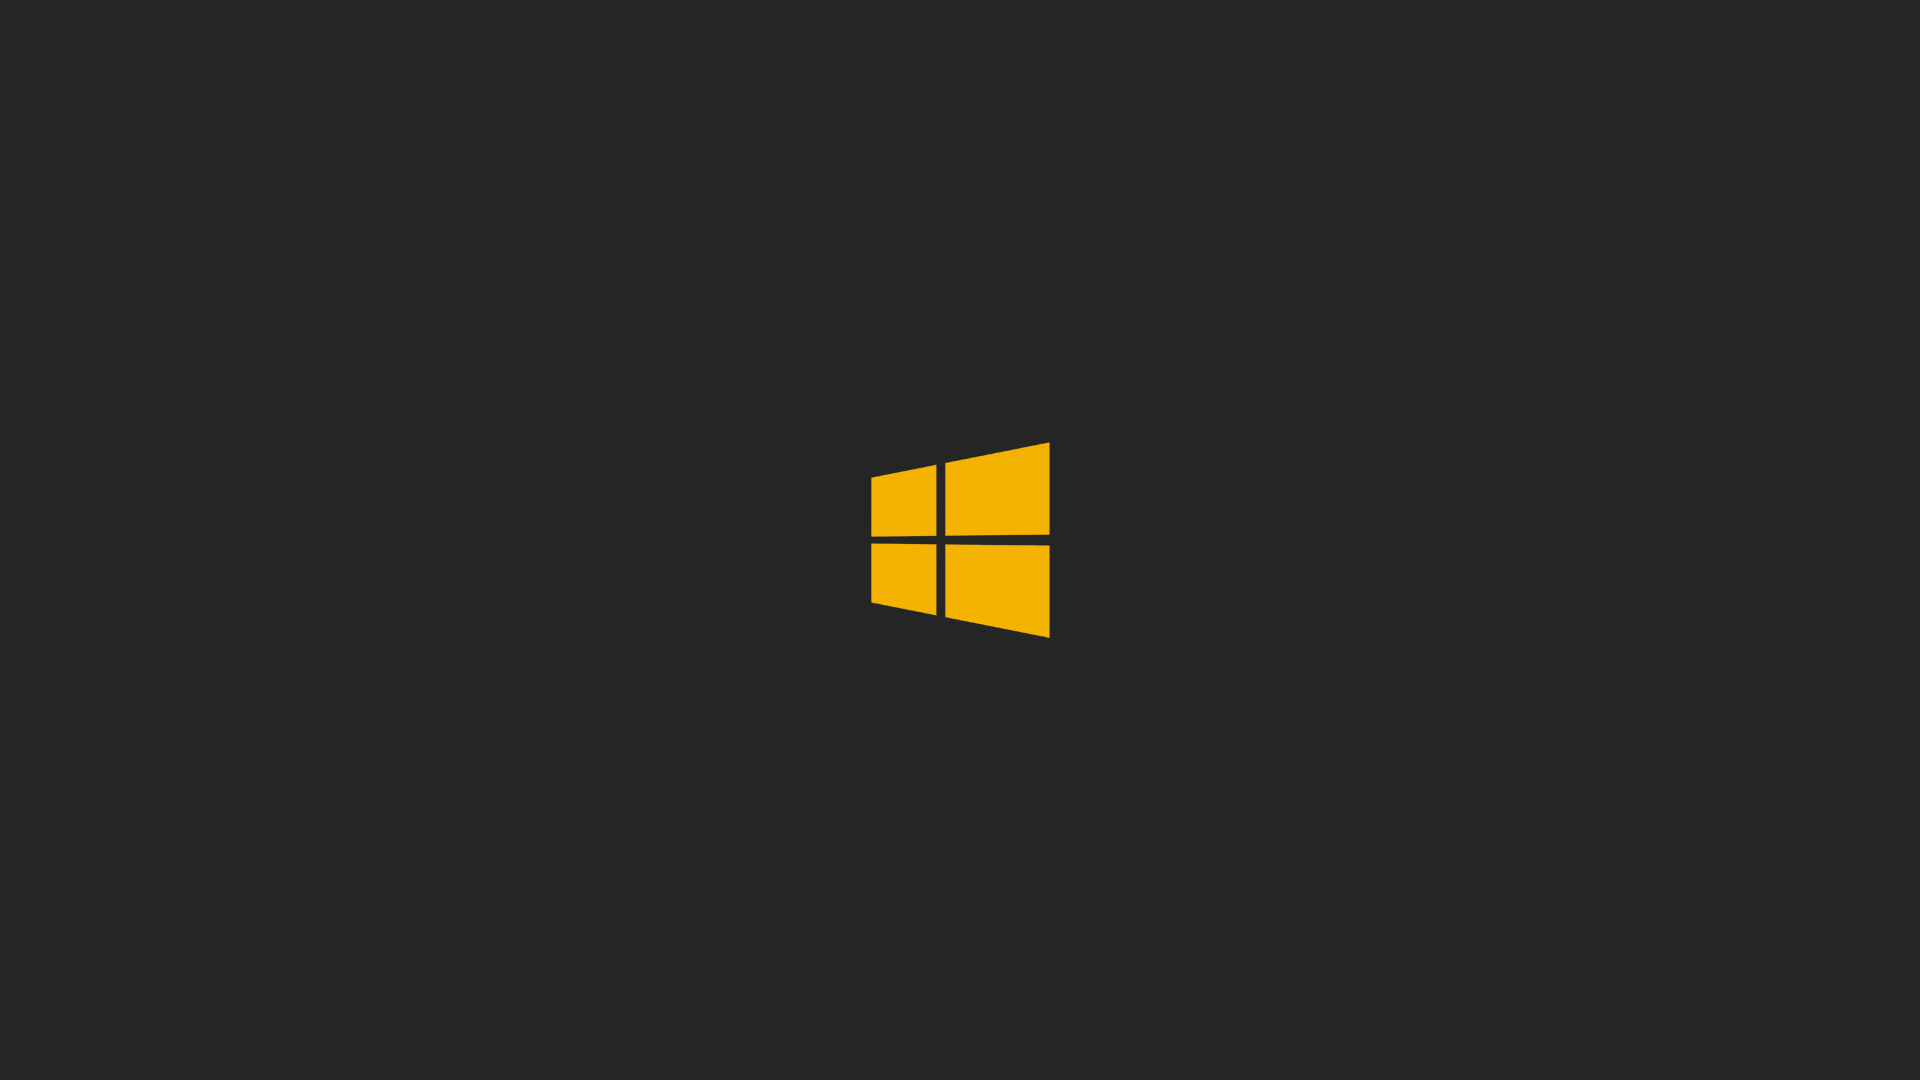 microsoft hd wallpaper 1920x1080 - wallpapersafari